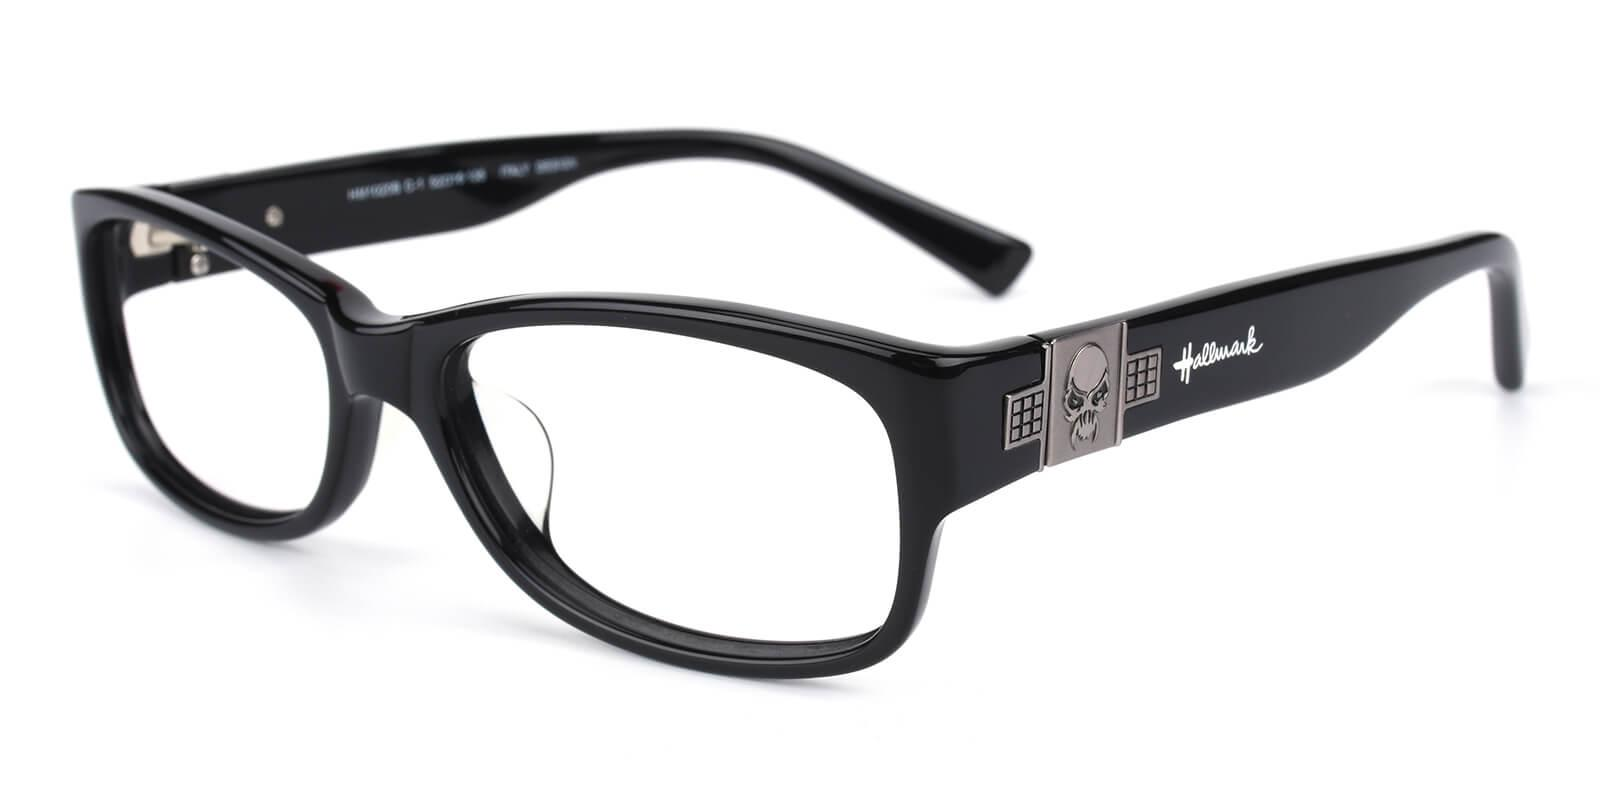 Ghasty-Black-Rectangle-Acetate-Eyeglasses-detail